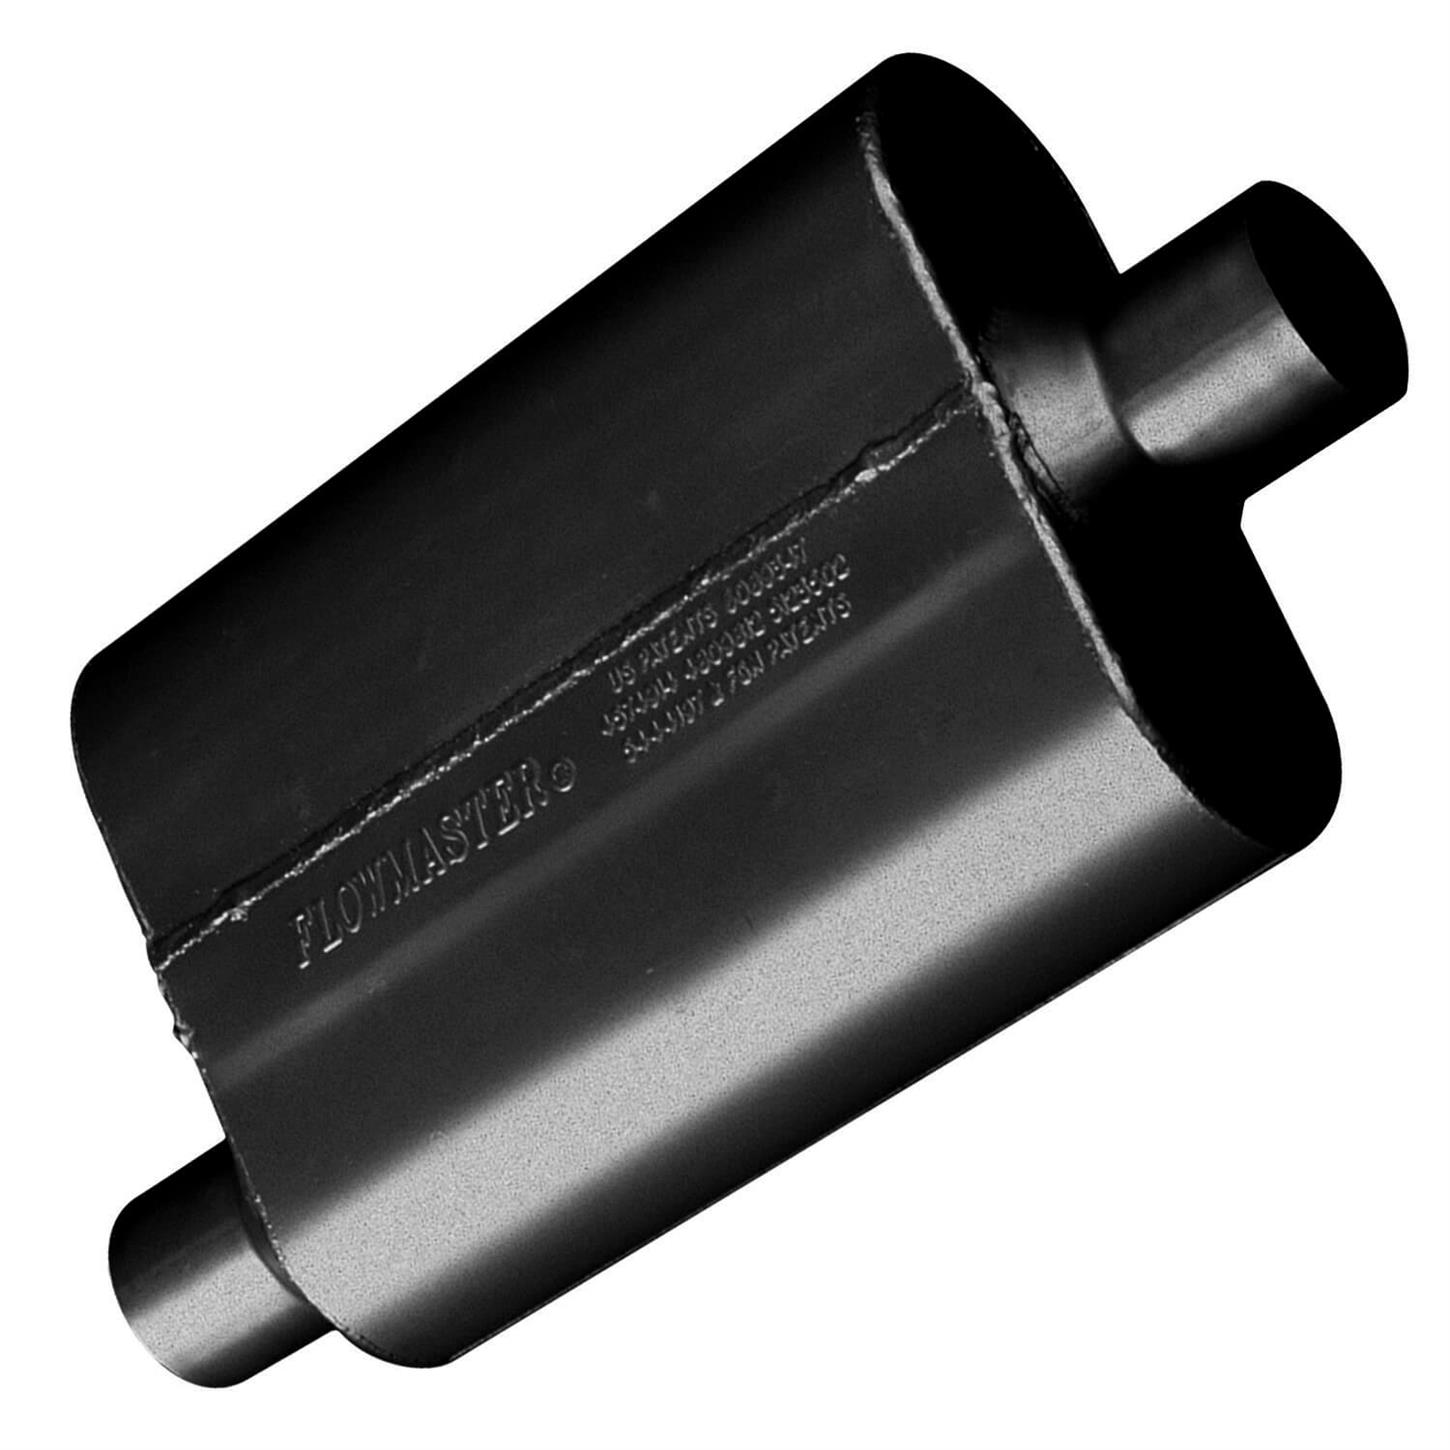 Aggressiv 3.00 Offset In Flowmaster 40 Series Muffler 409S 3.00 Center Out